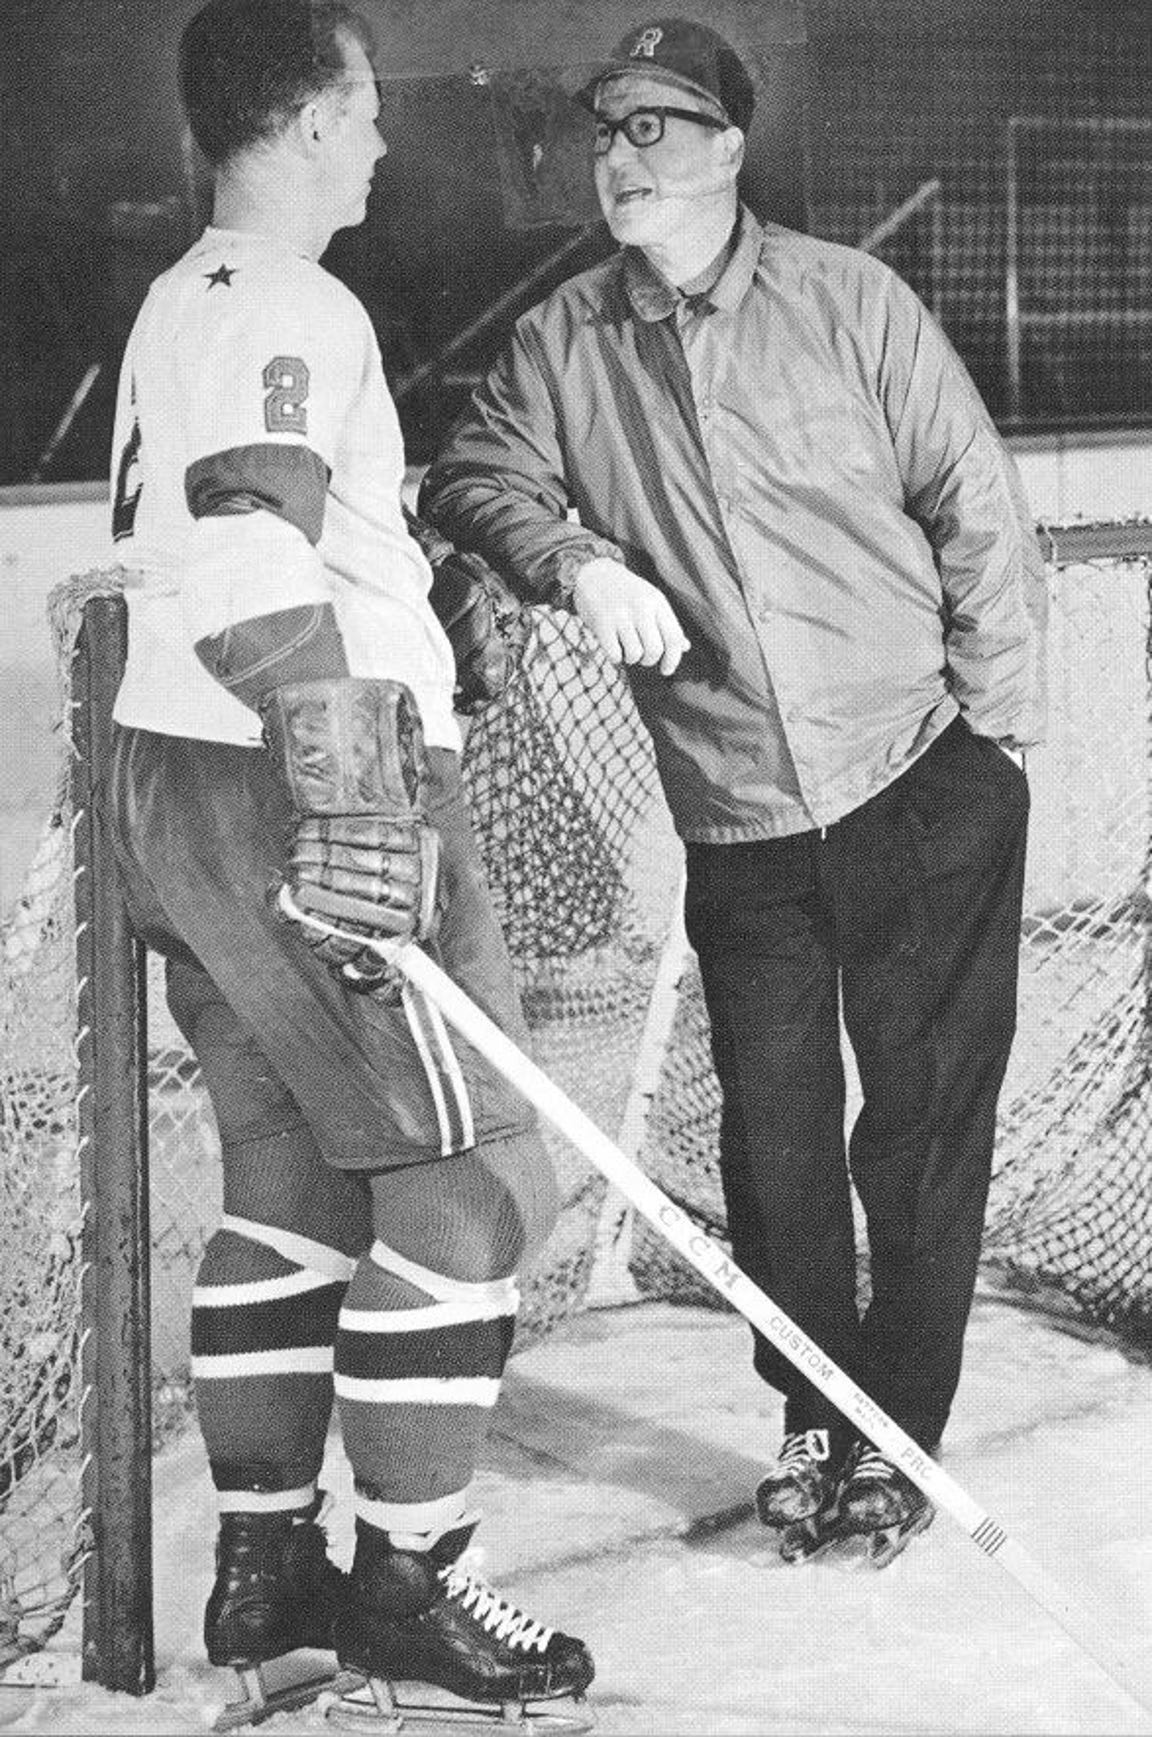 Defenseman Don Cherry, left, chats with Rochester Americans coach Joe Crozier in the 1960s.